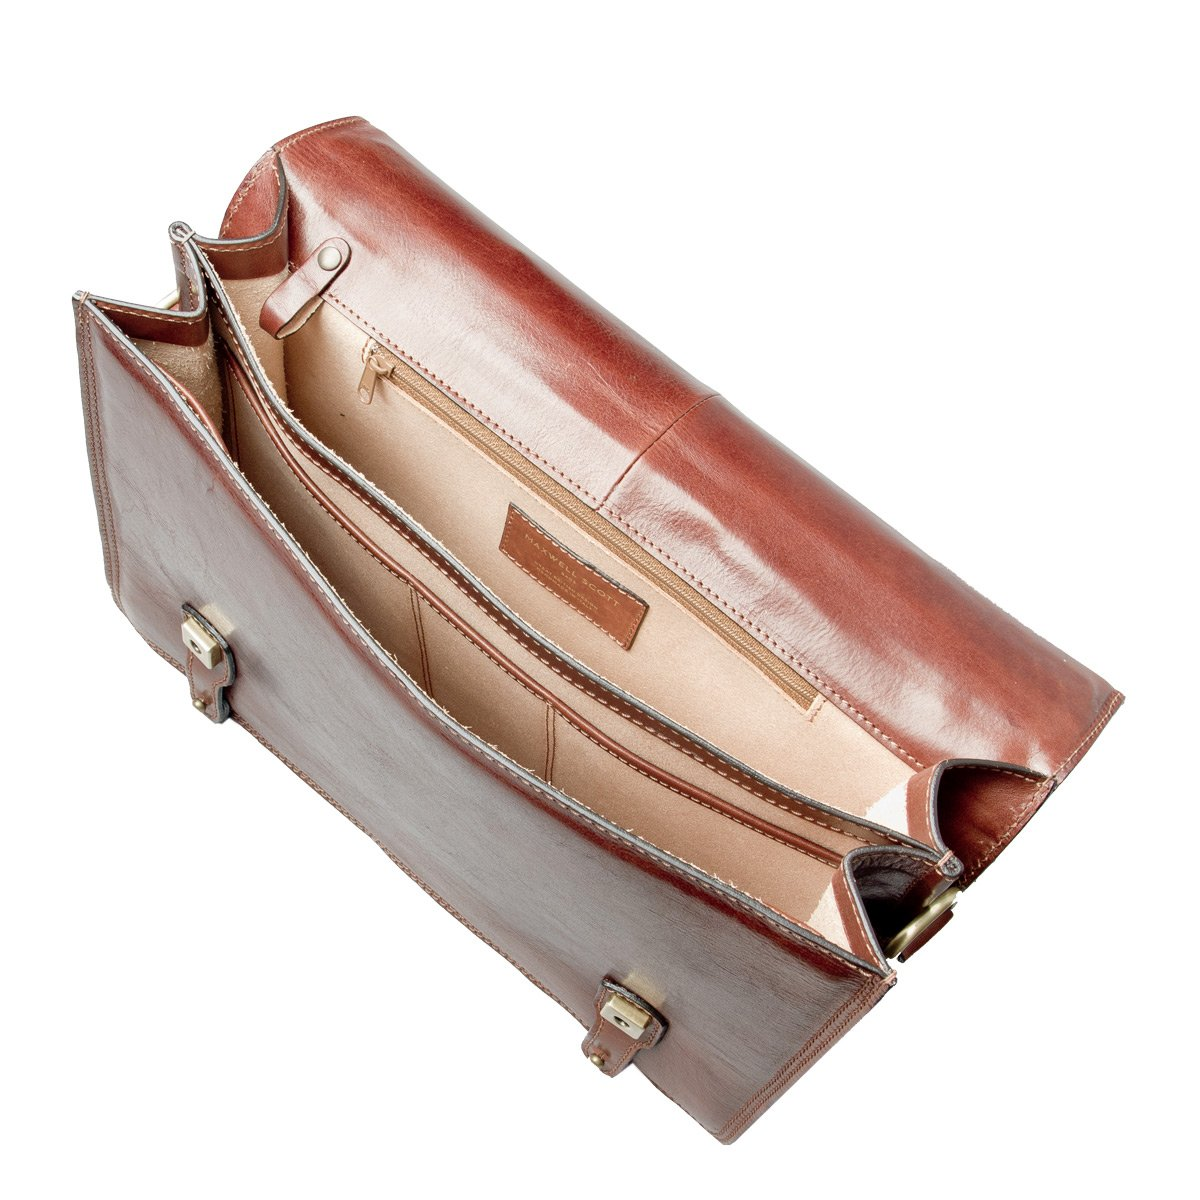 Maxwell Scott Personalized Luxury Tan Mens Leather Satchels (The Battista) - One Size by Maxwell Scott Bags (Image #6)